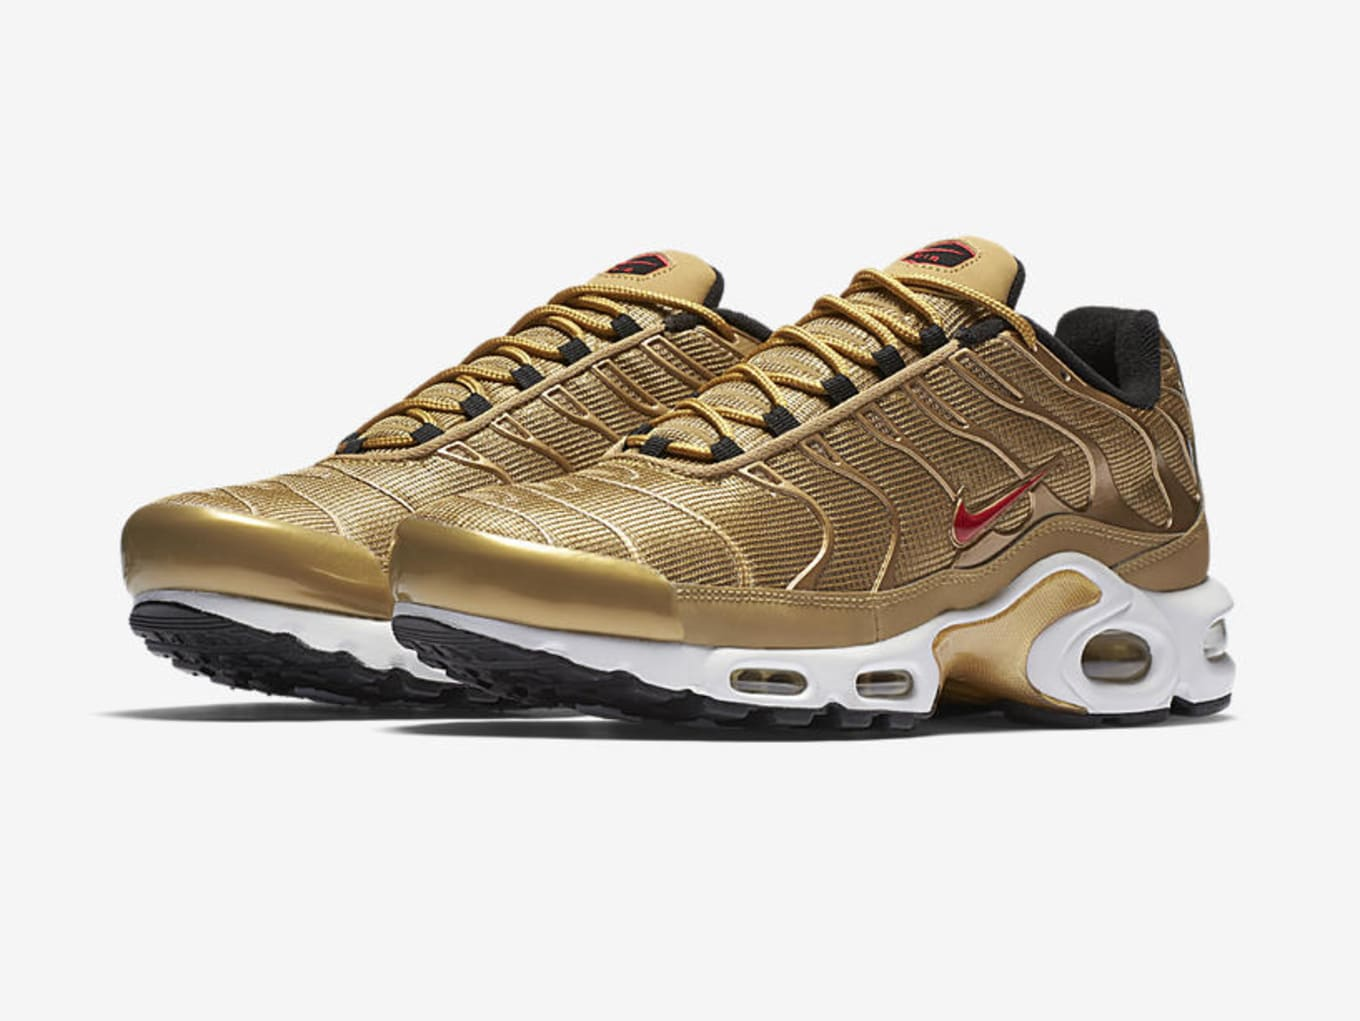 Nike And Jewell Collector Metallic Plus GoldSole Air Max c3jRS5A4Lq